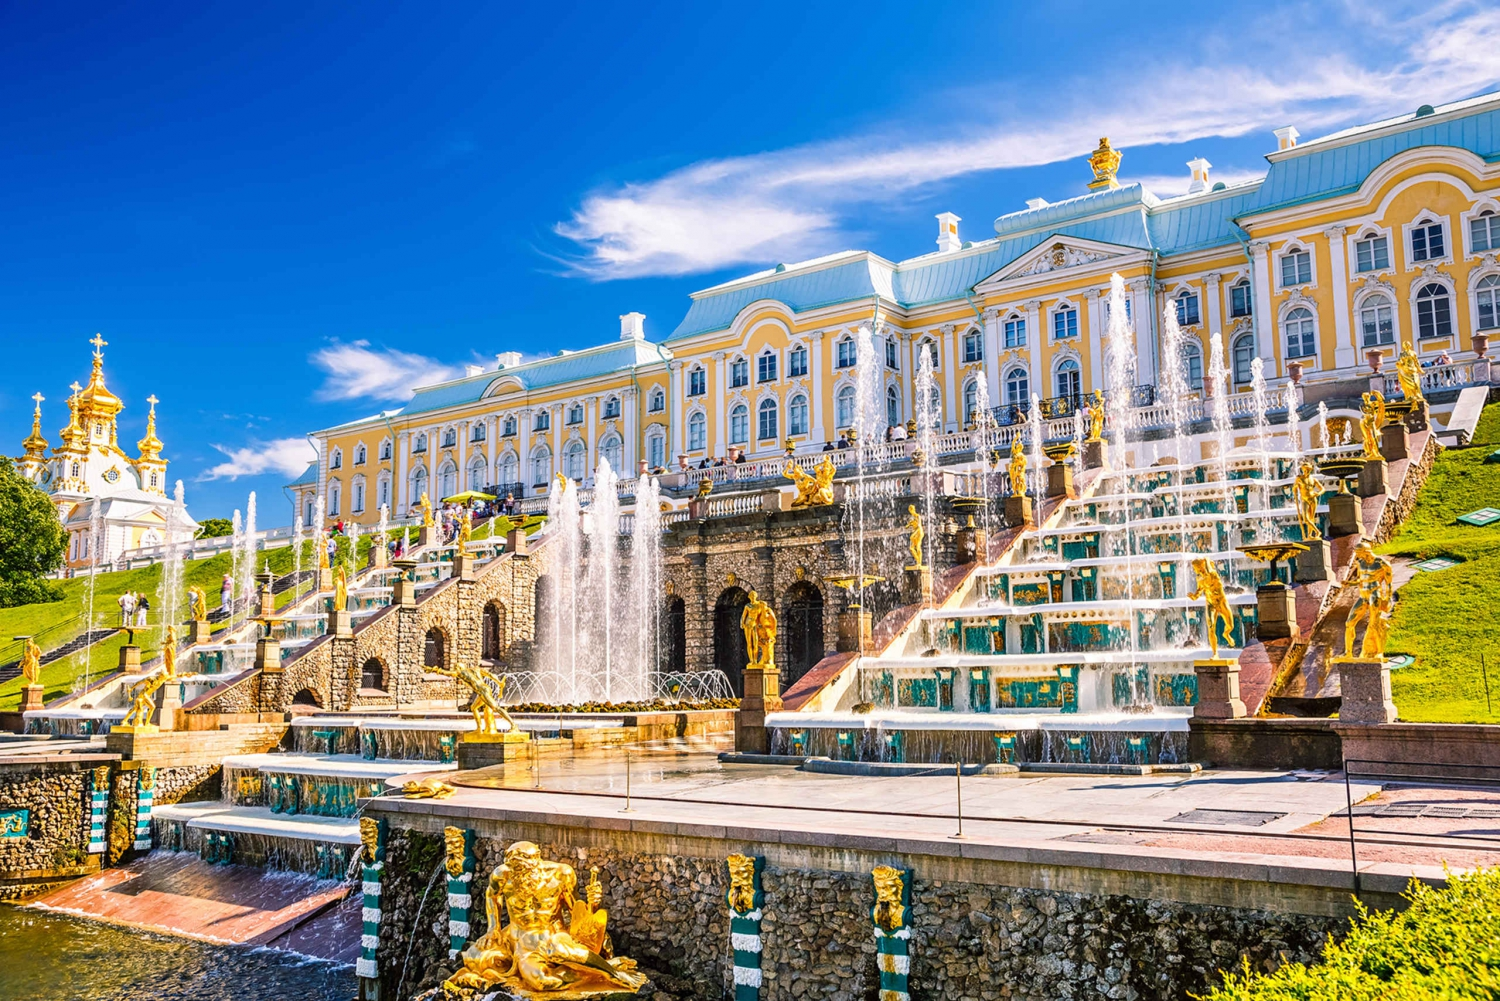 From St. Petersburg: Tour Gardens & Fountains of Peterhof